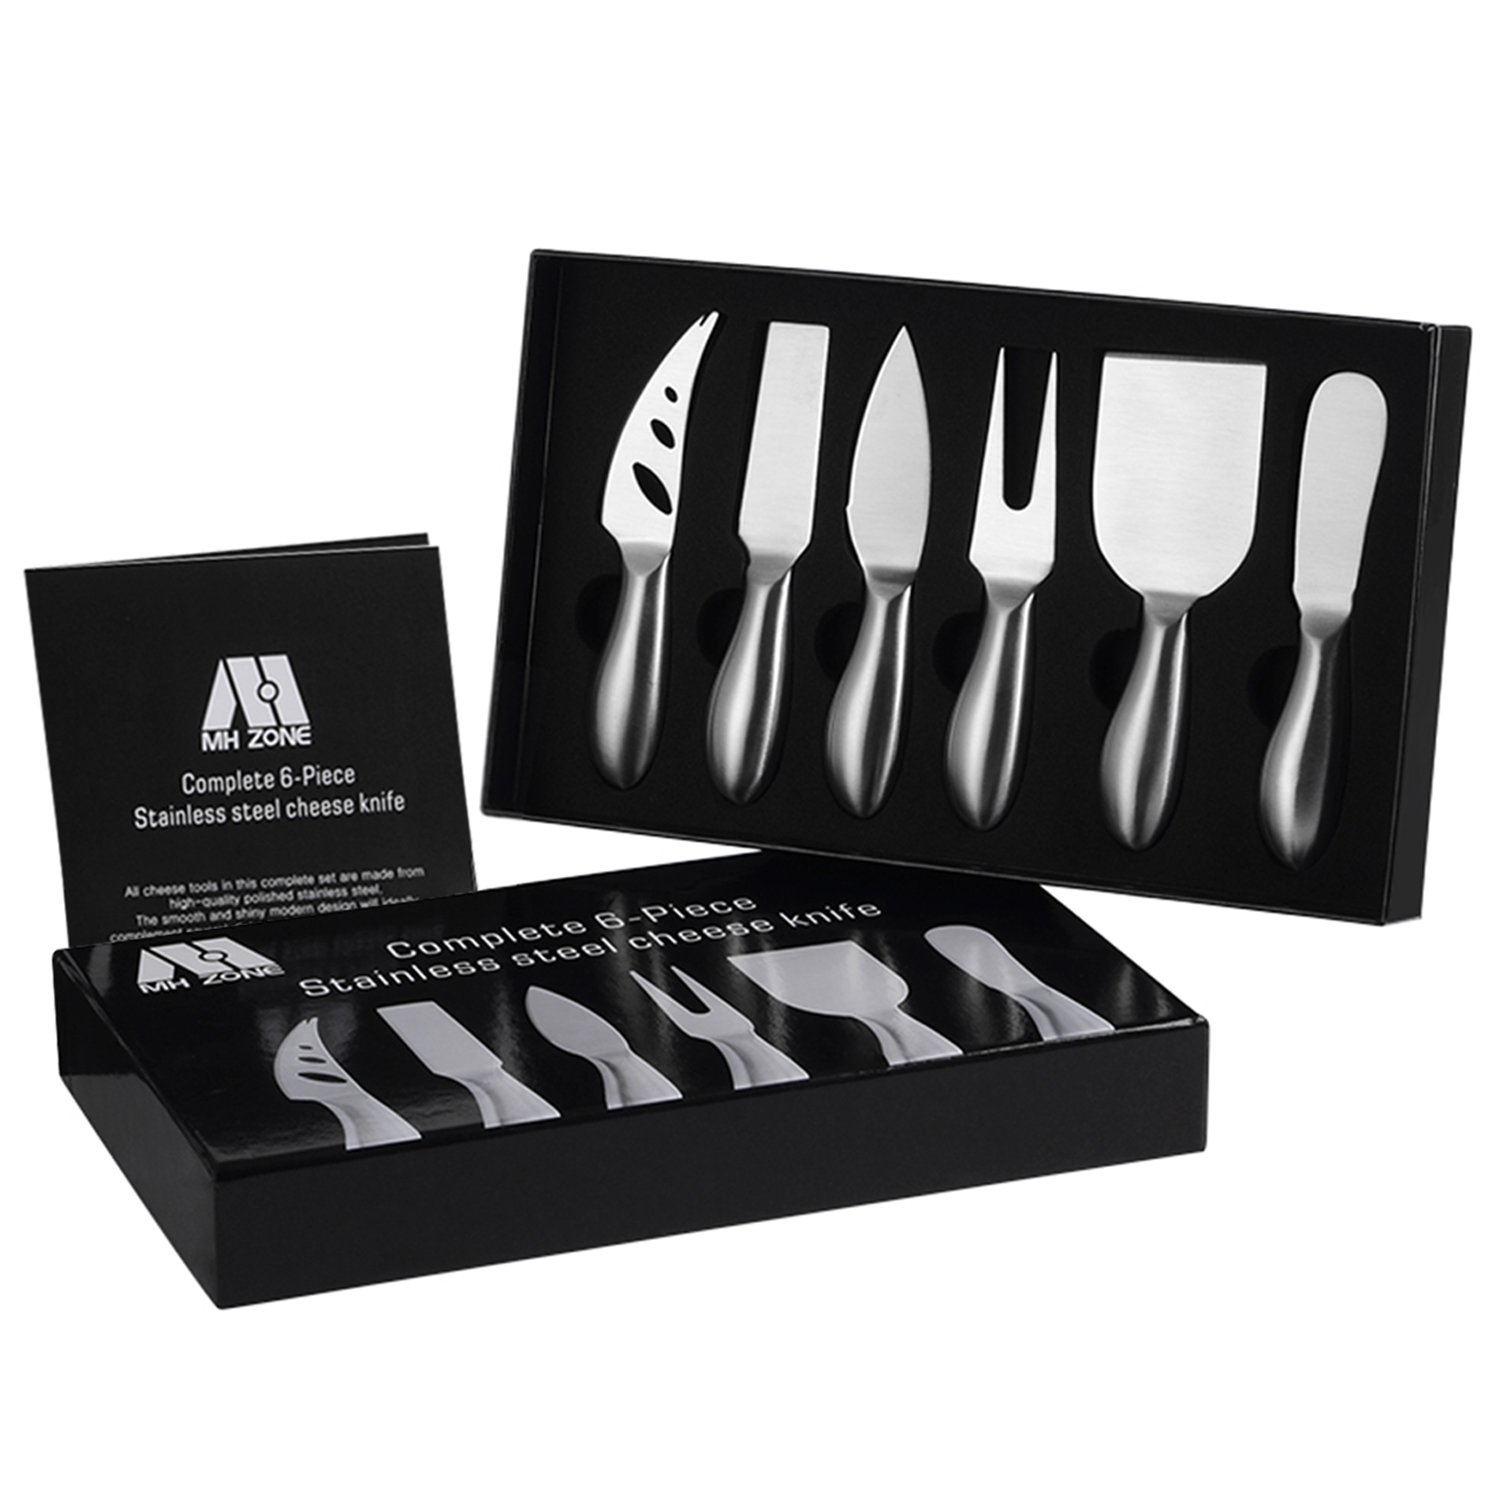 Premium 6-Piece Cheese Knife Set - M MH ZONE Complete Stainless Steel Cheese Knives Gift Knives Sets Collection, Suit for the Wedding, Lover, Elders, Children and Friends, Perfect School Supplies